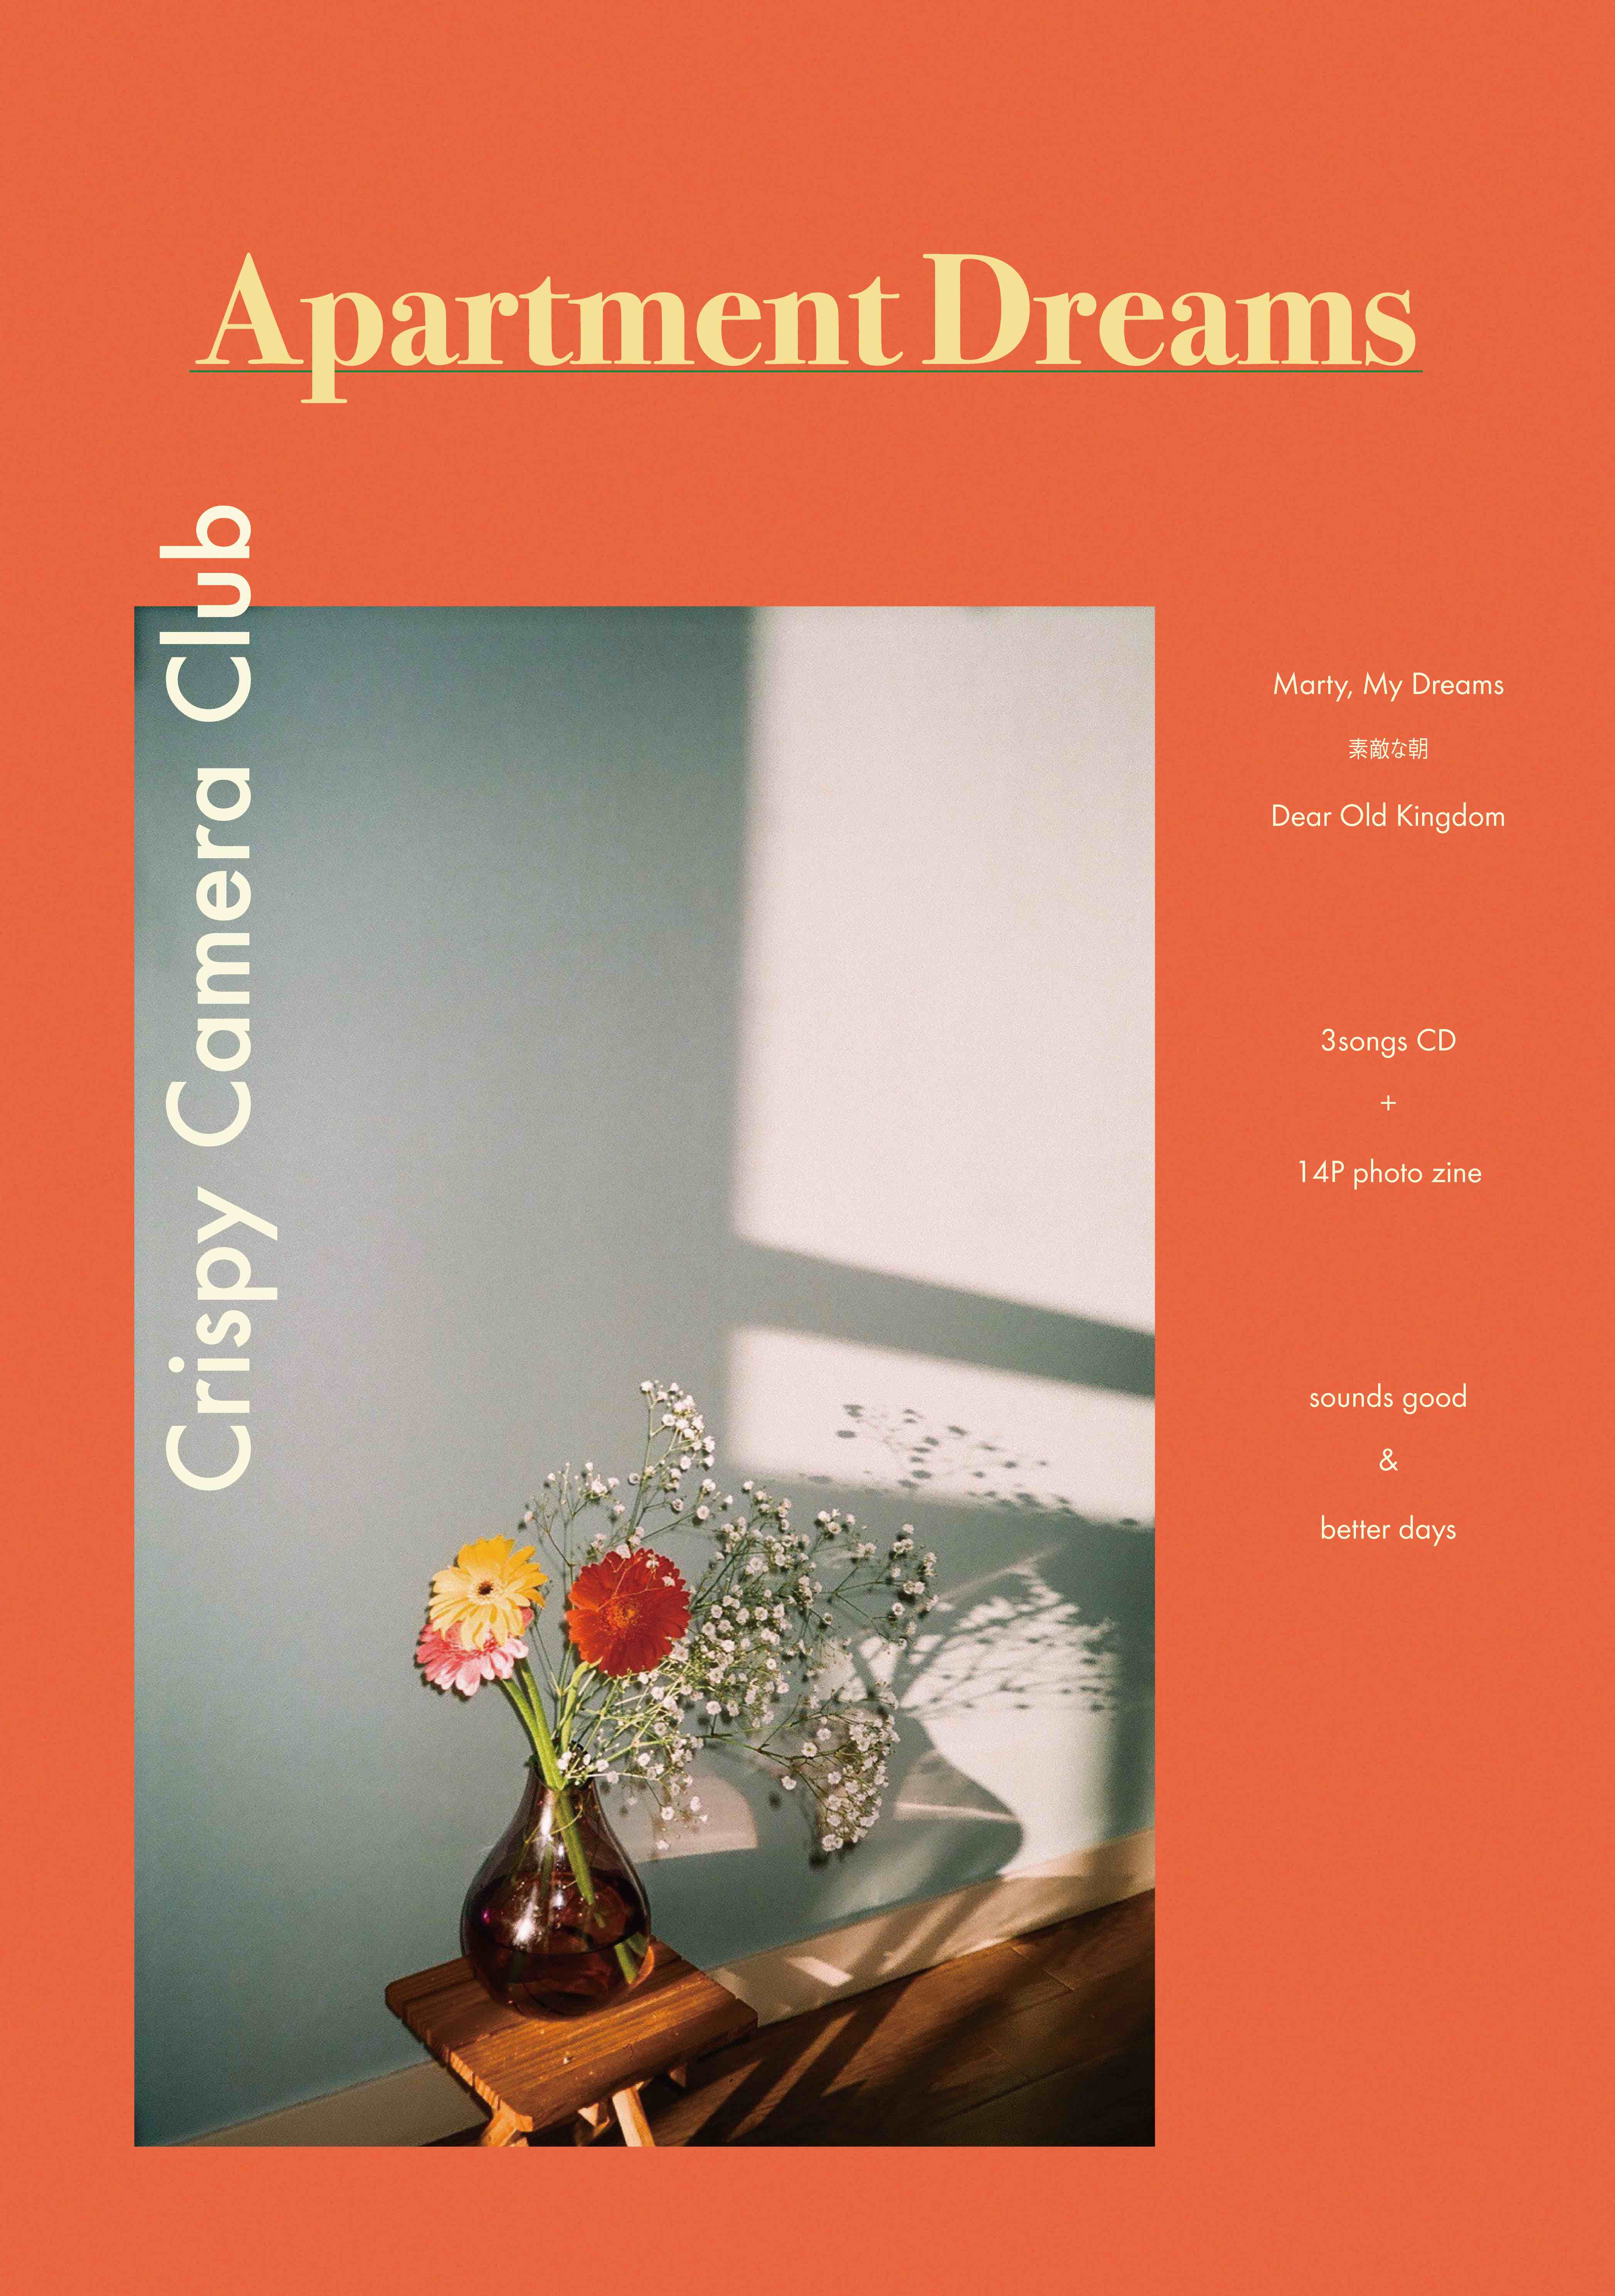 【CCC】Apartment Dreams(バーコード無)_0812.jpg